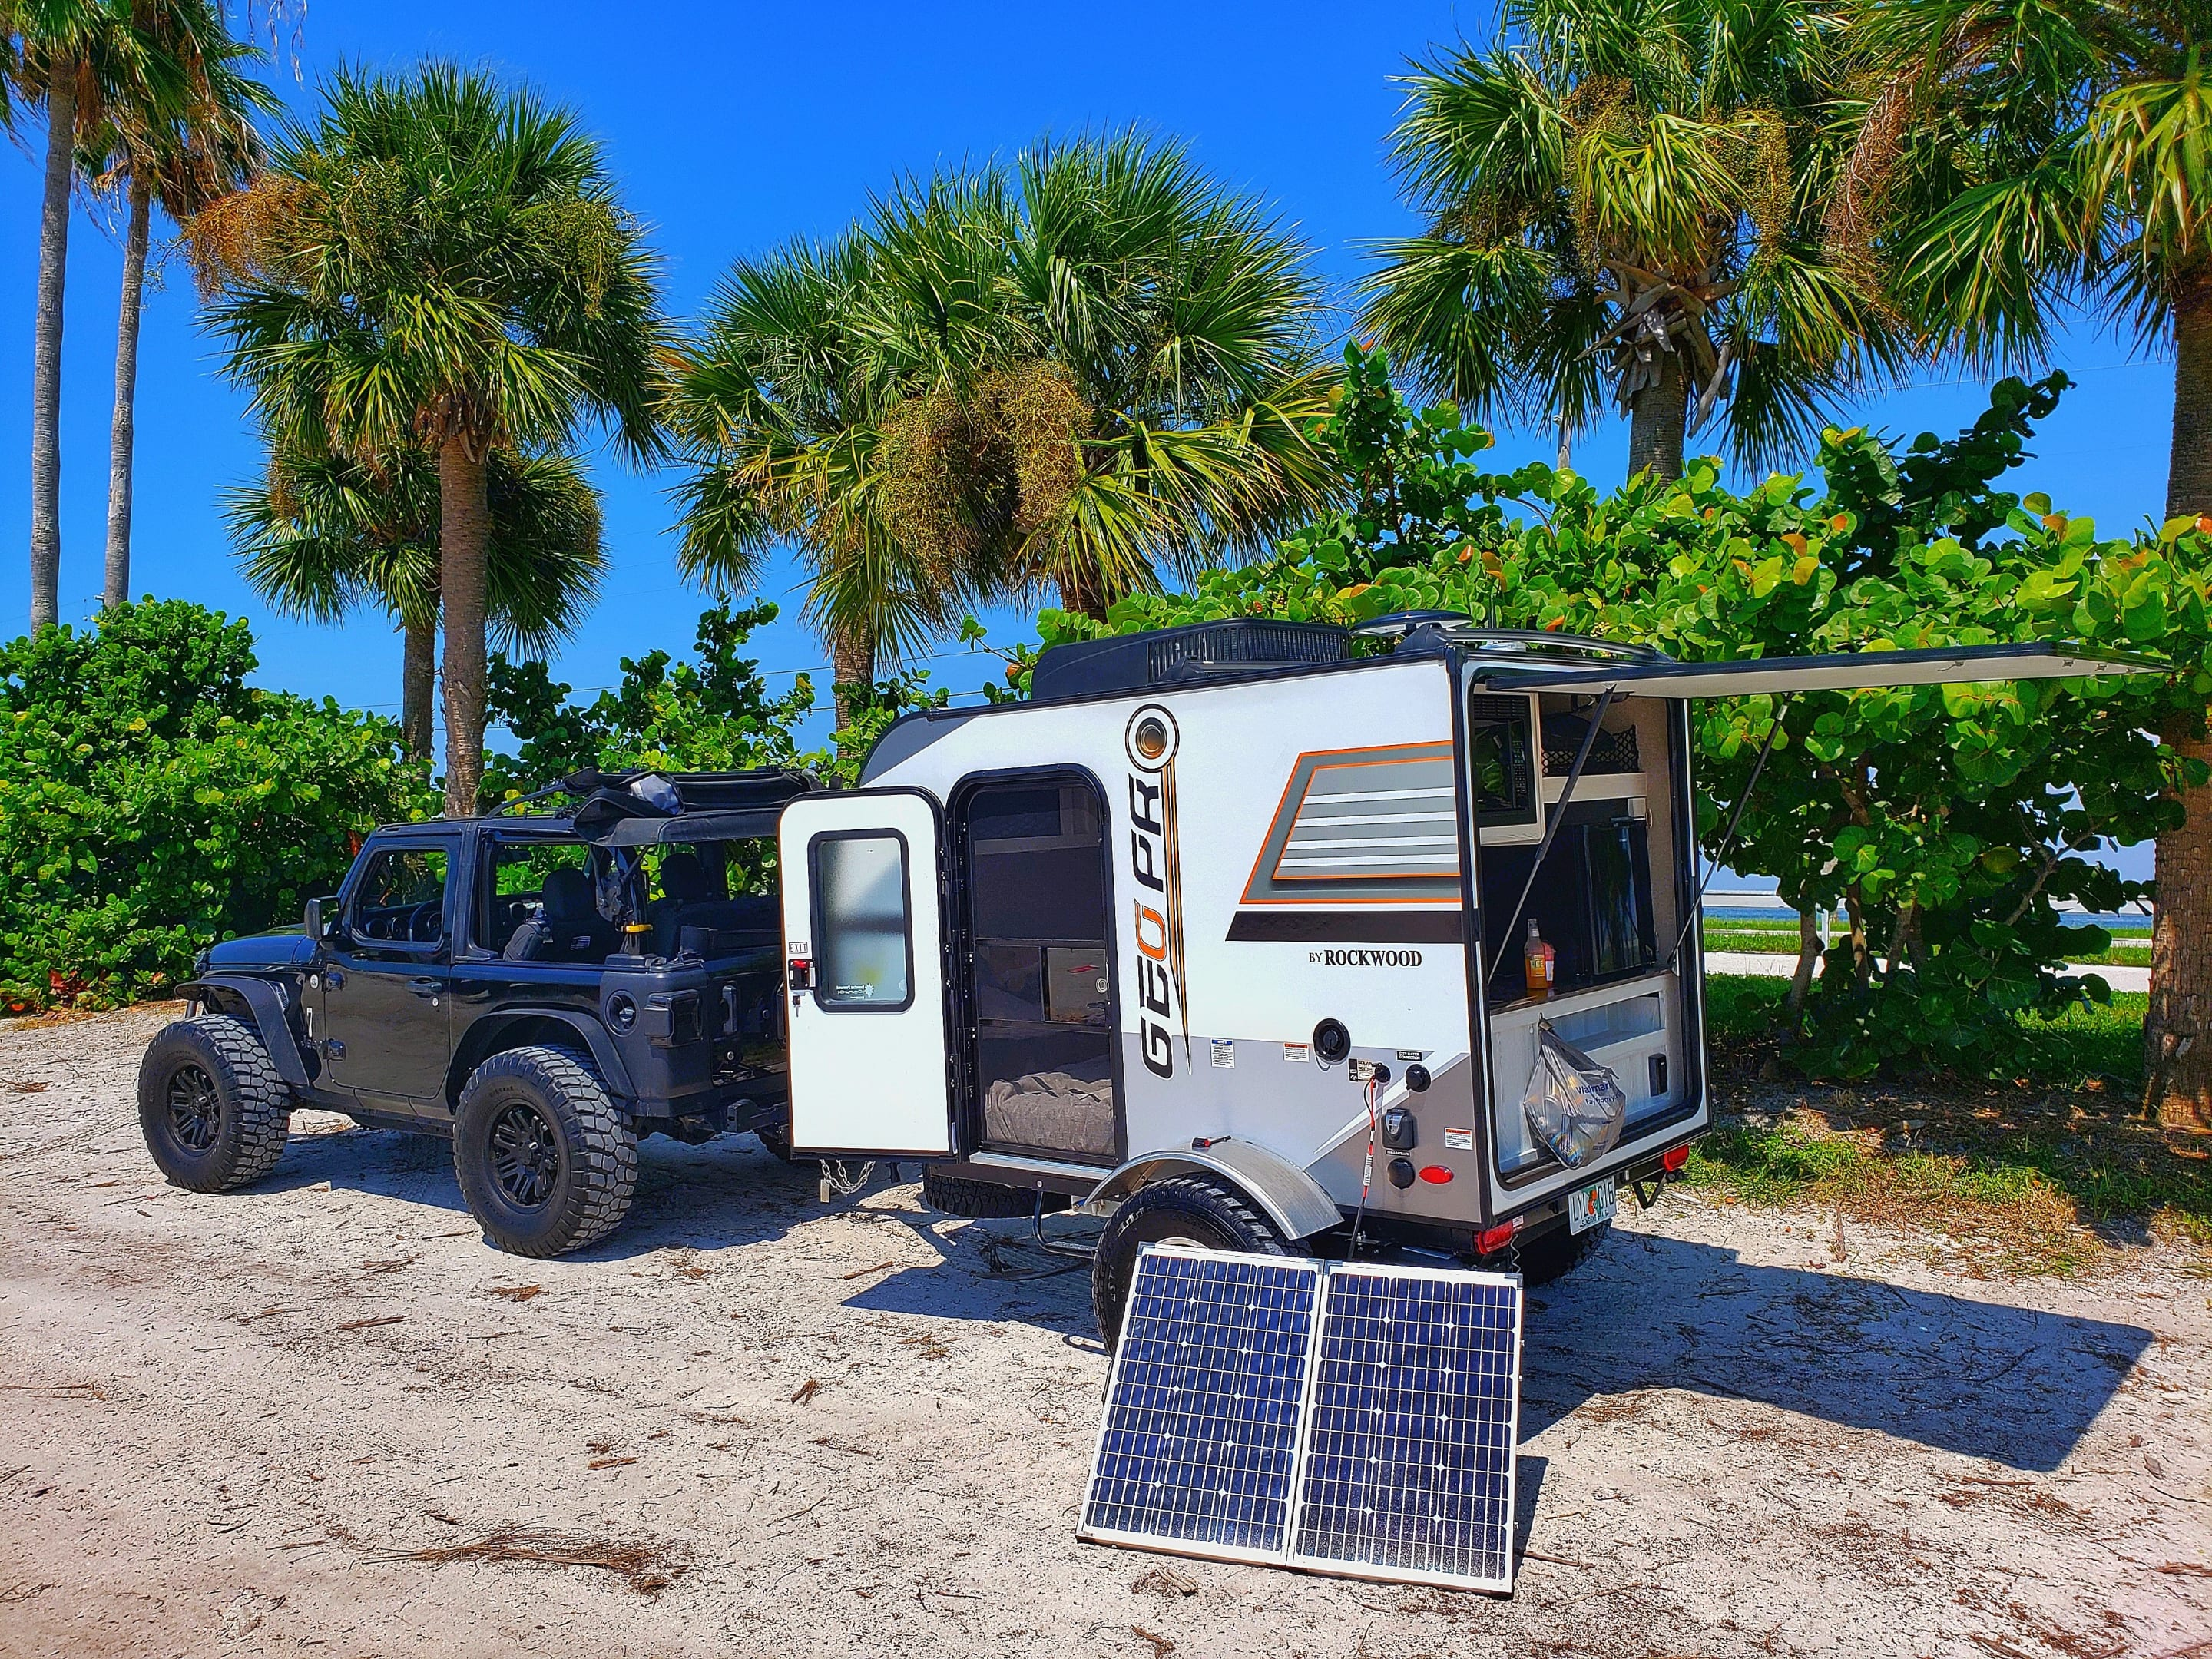 Easy to tow with almost anything.  130 watts of solar power keeps the batteries topped off quite well.  I just camped for two nights and it stayed charged.. Forest River Rockwood 2019